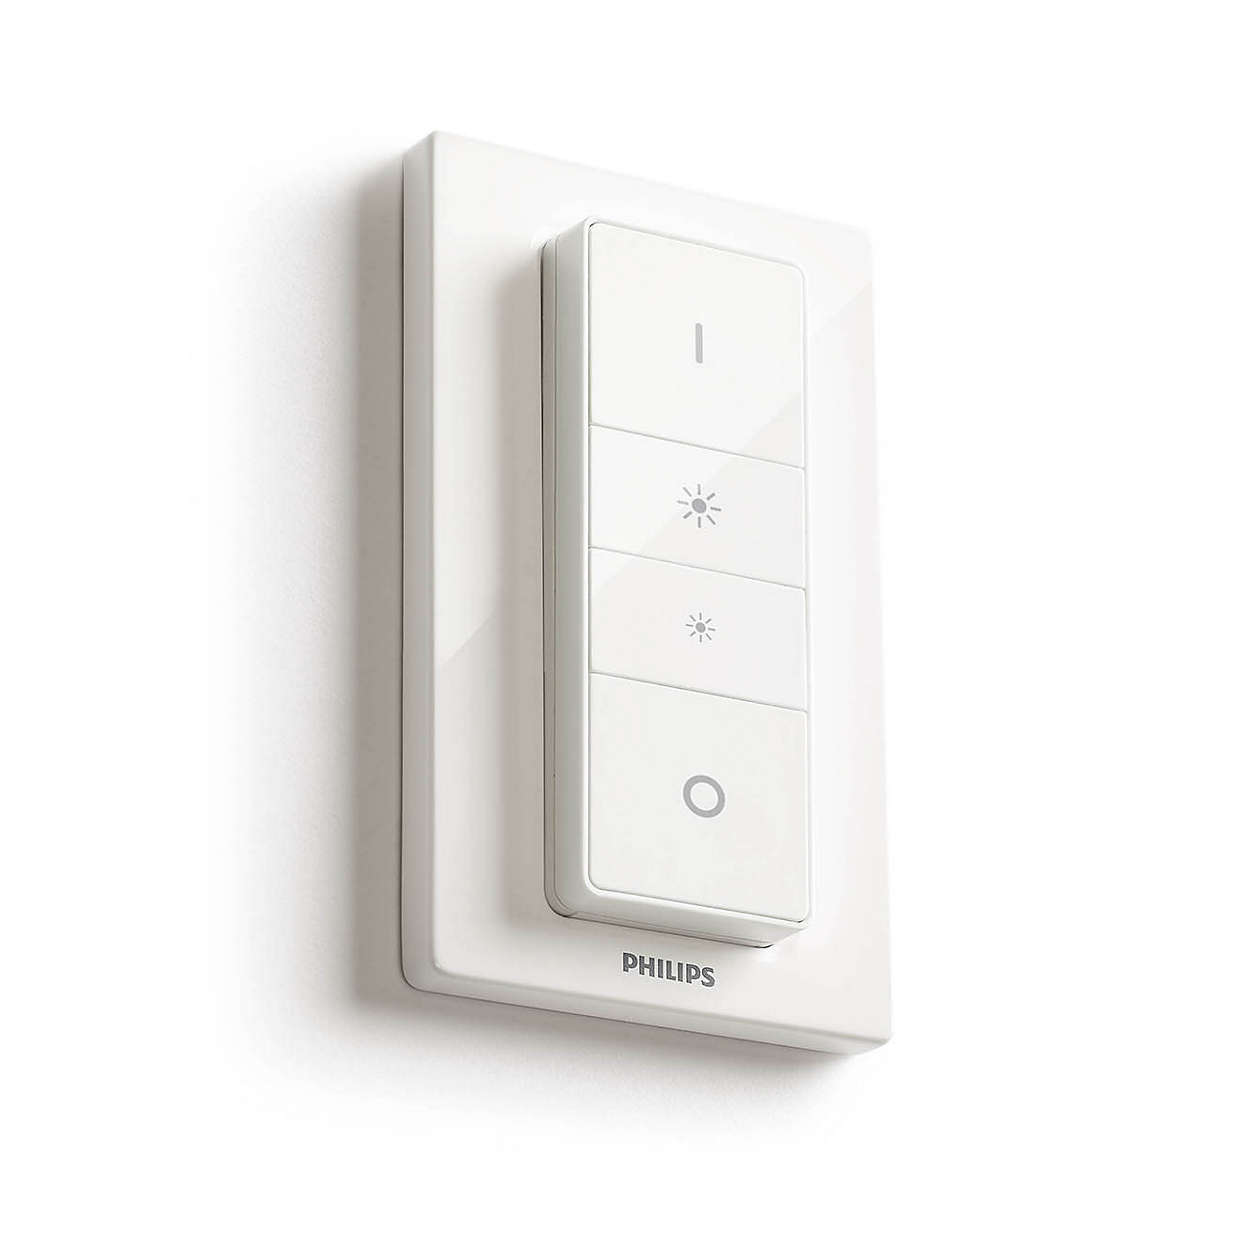 Dimmer switch 046677458140 | Philips